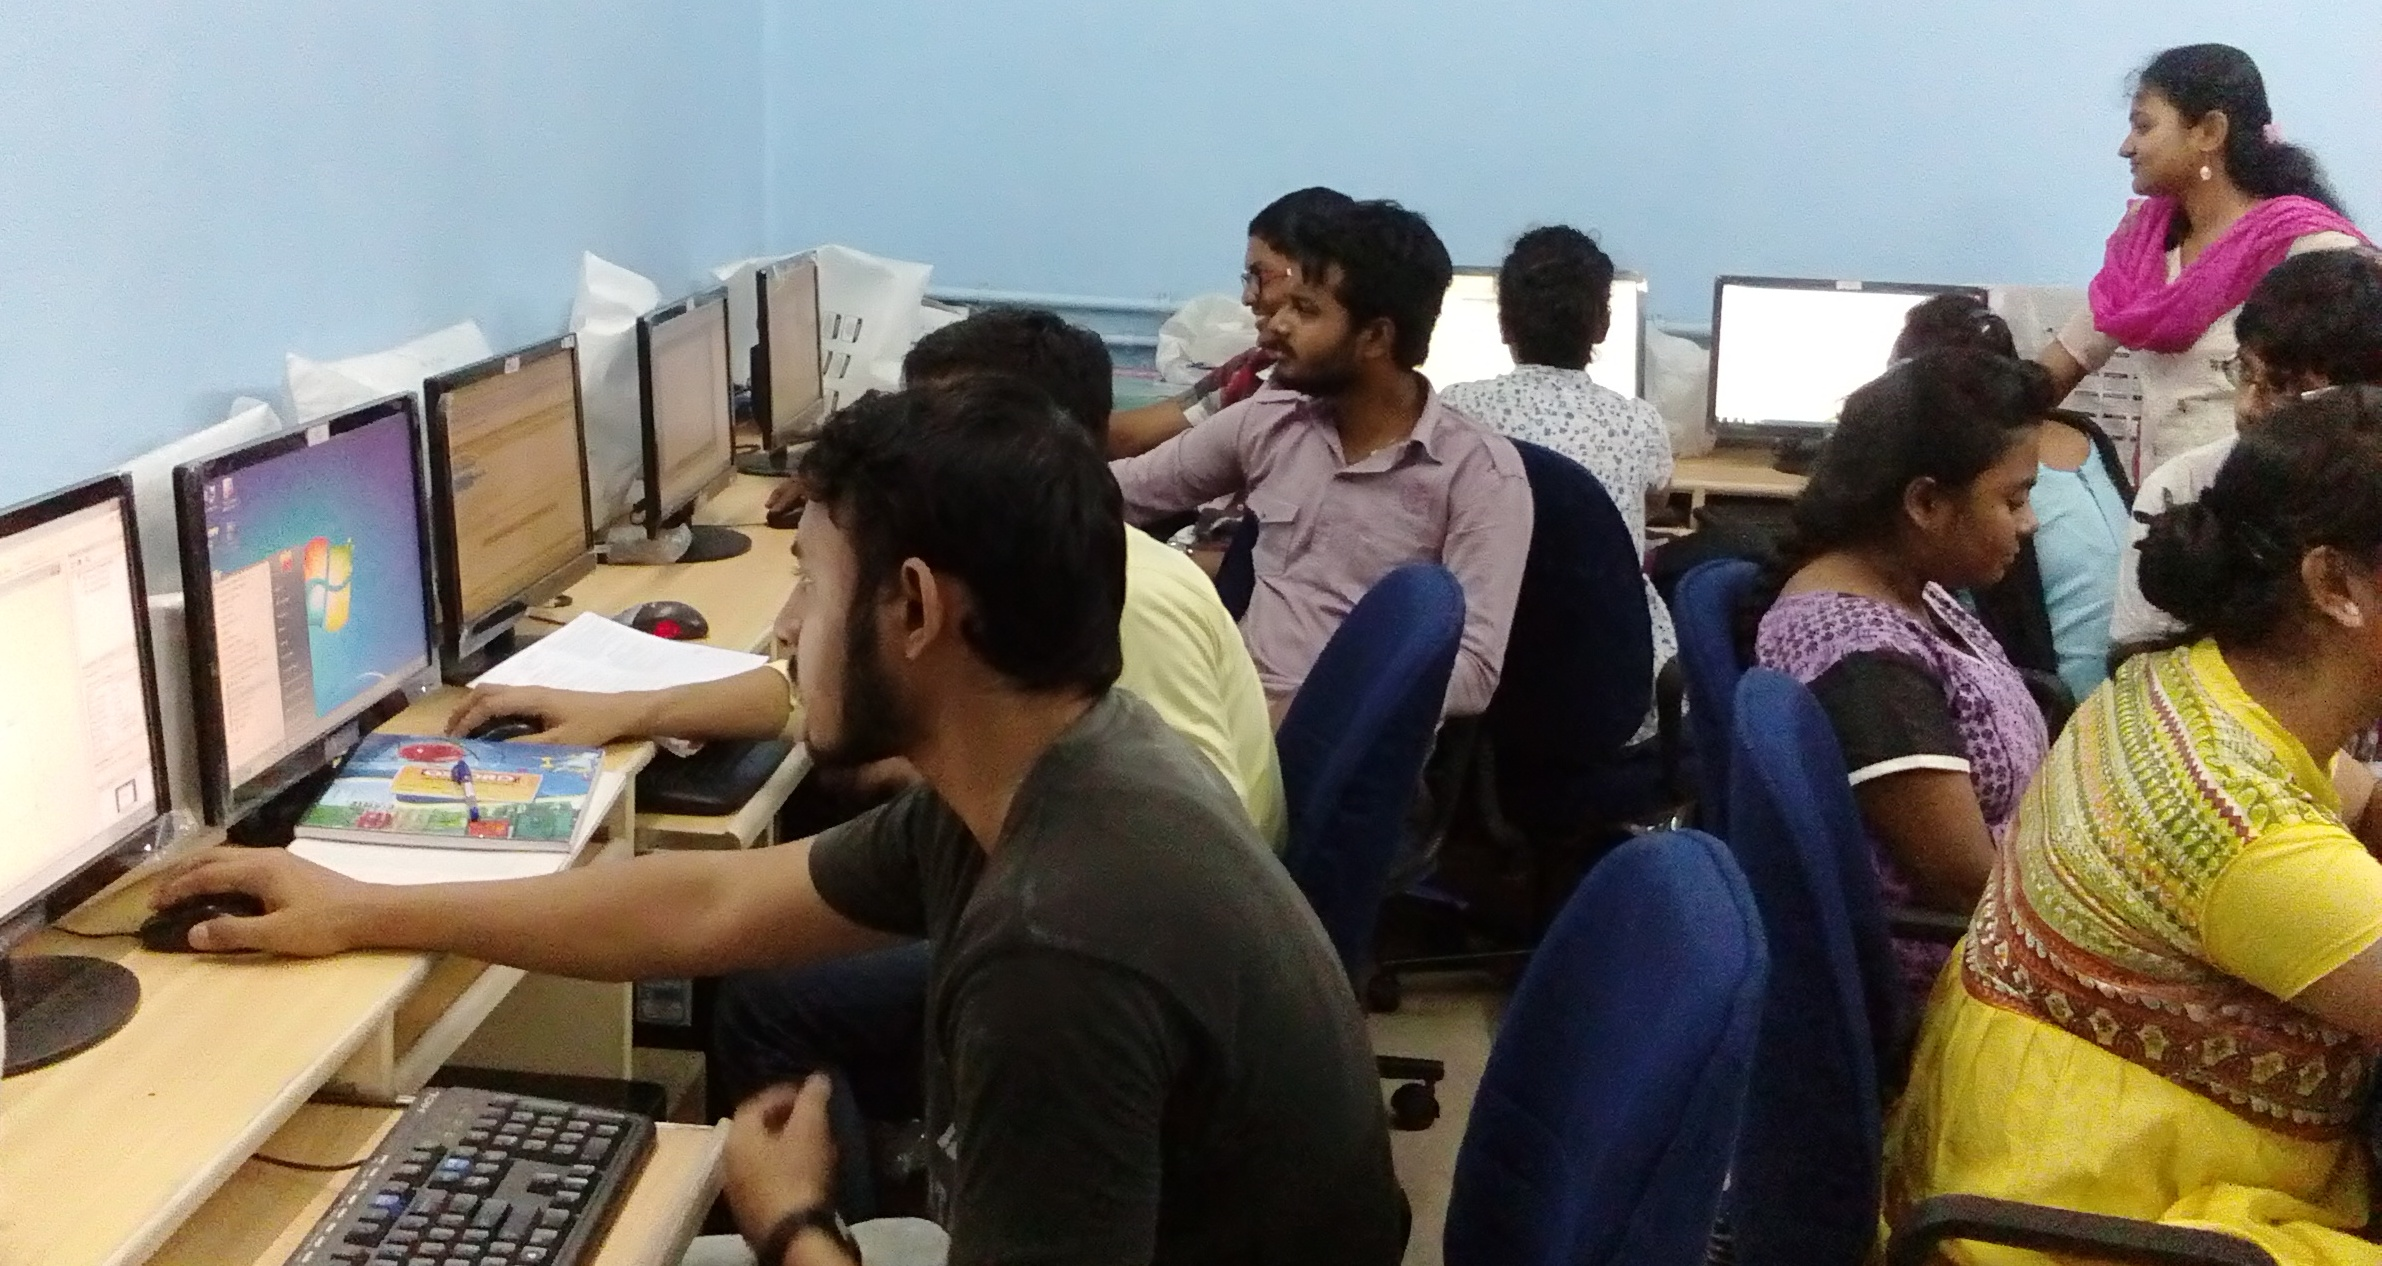 Practical Class had being taken by faculty of computer science